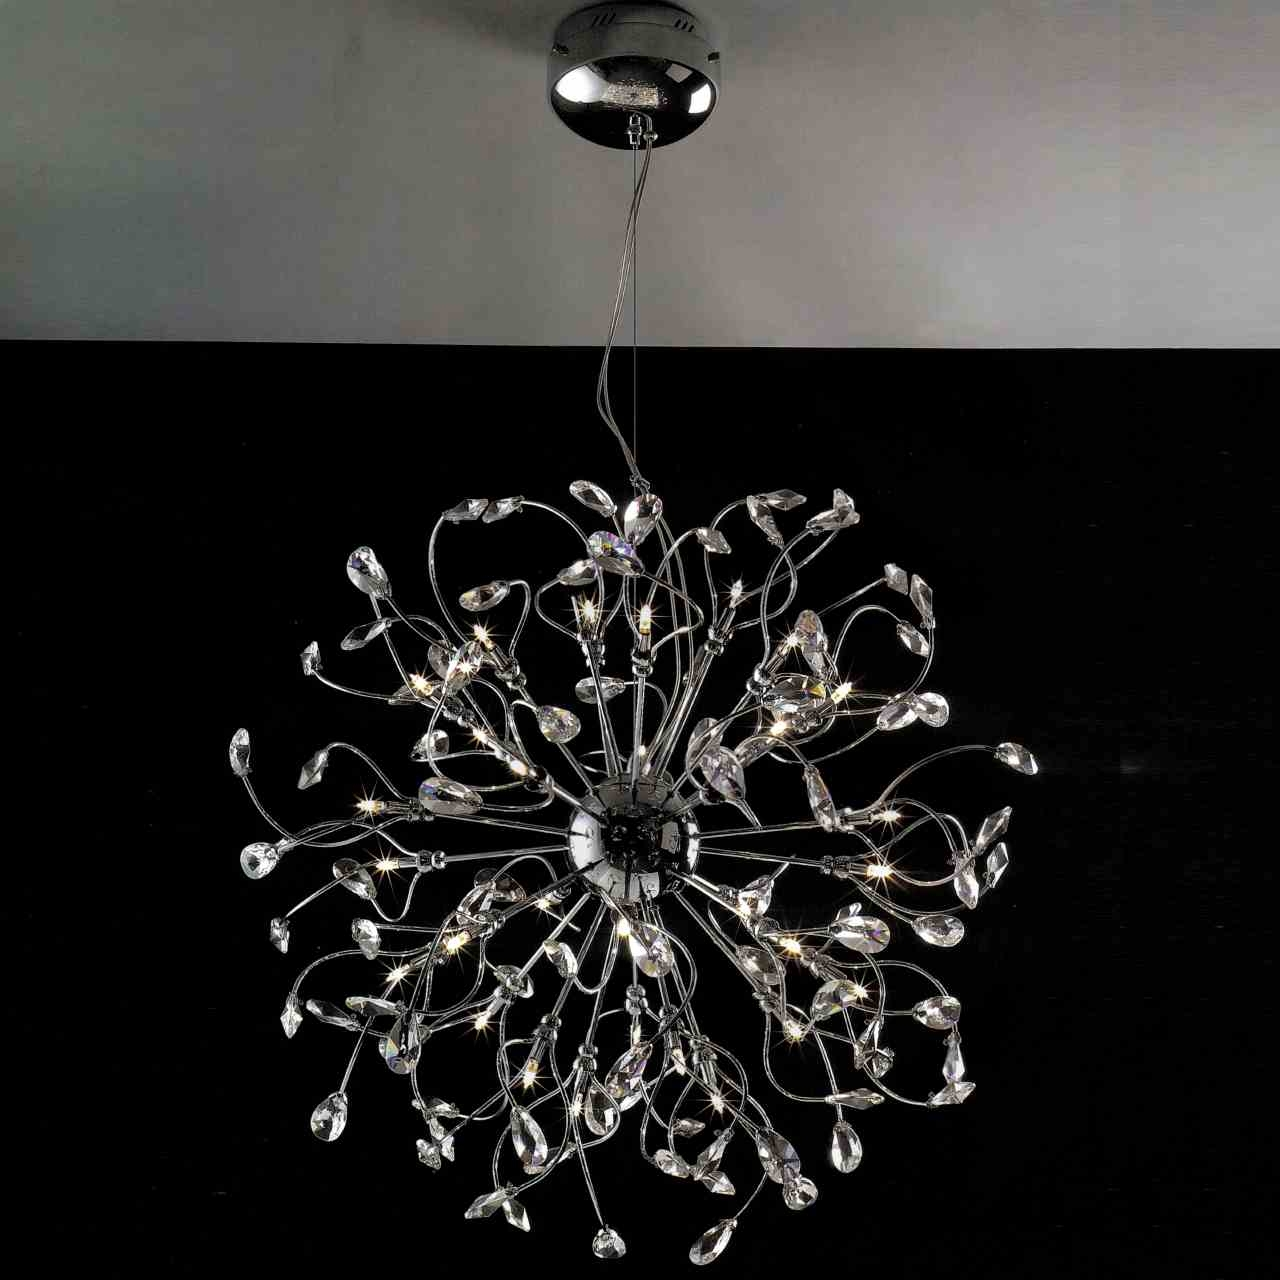 Brizzo Lighting Stores 30 Tempesta Modern Crystal Round In Crystal Chrome Chandeliers (Image 7 of 25)